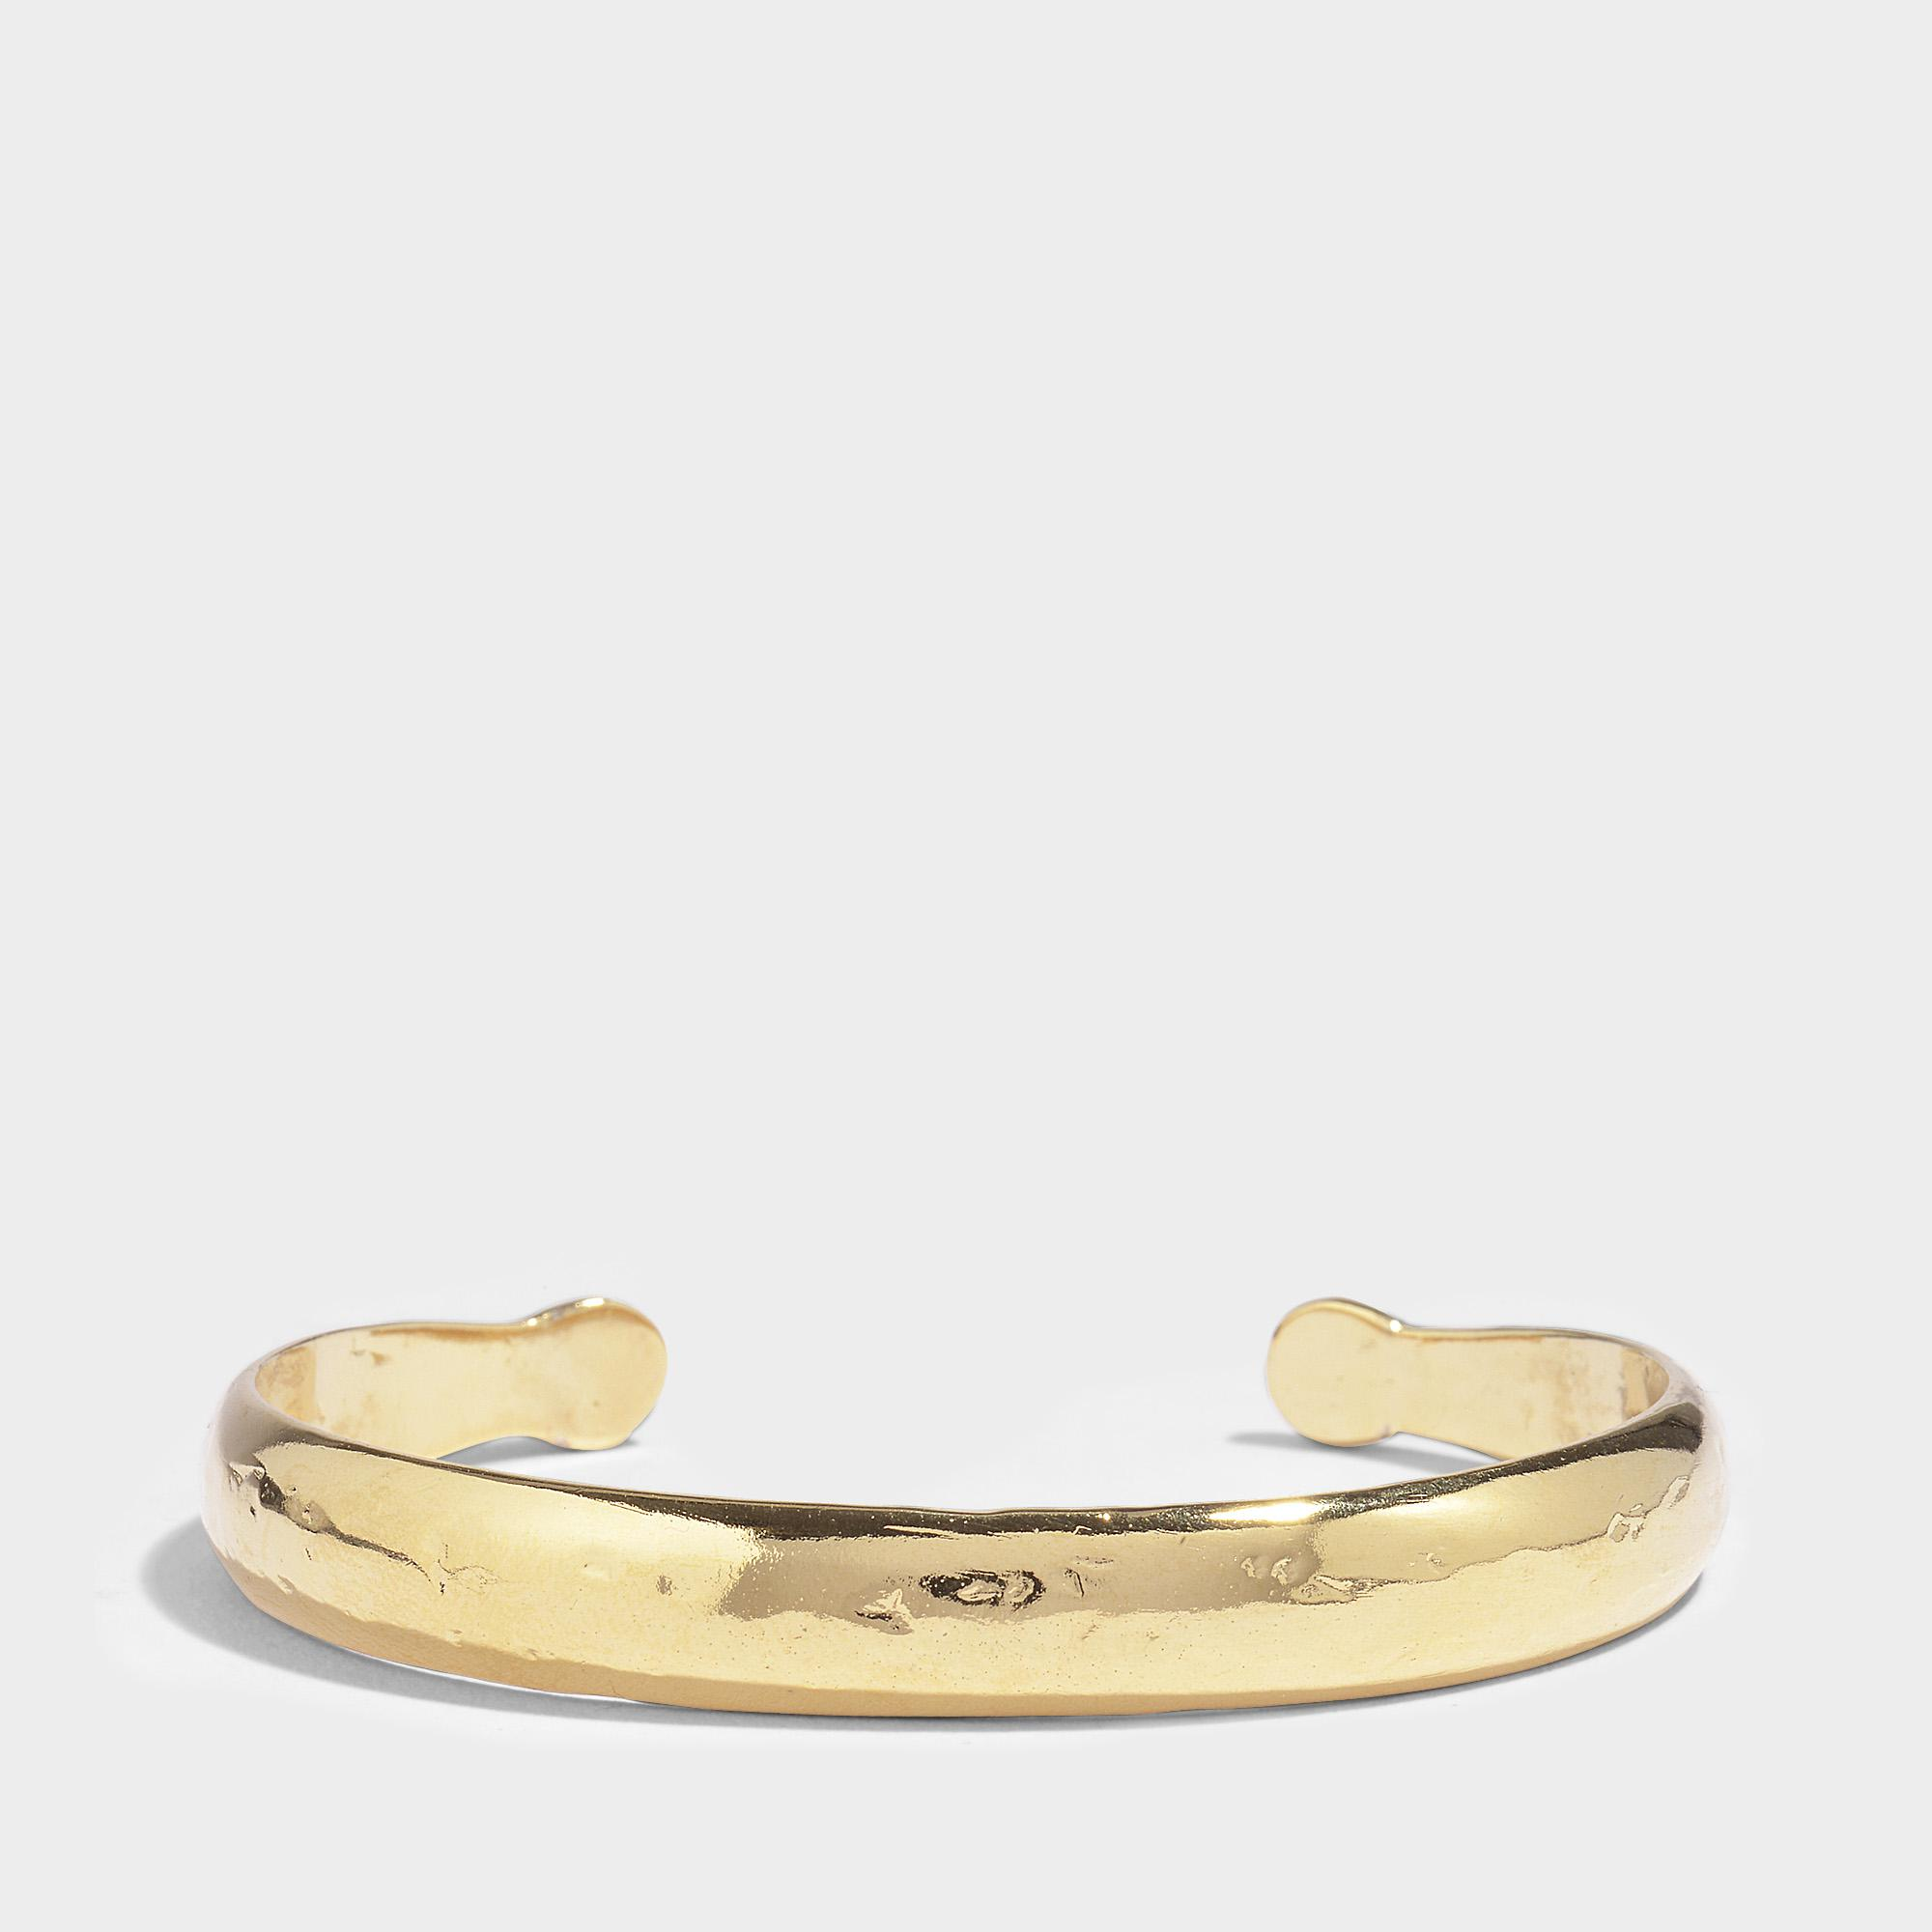 Aurélie Bidermann Maria Bracelet With Green Enamel in Green Enamel and 18K Gold-Plated Brass 1FpWy0t